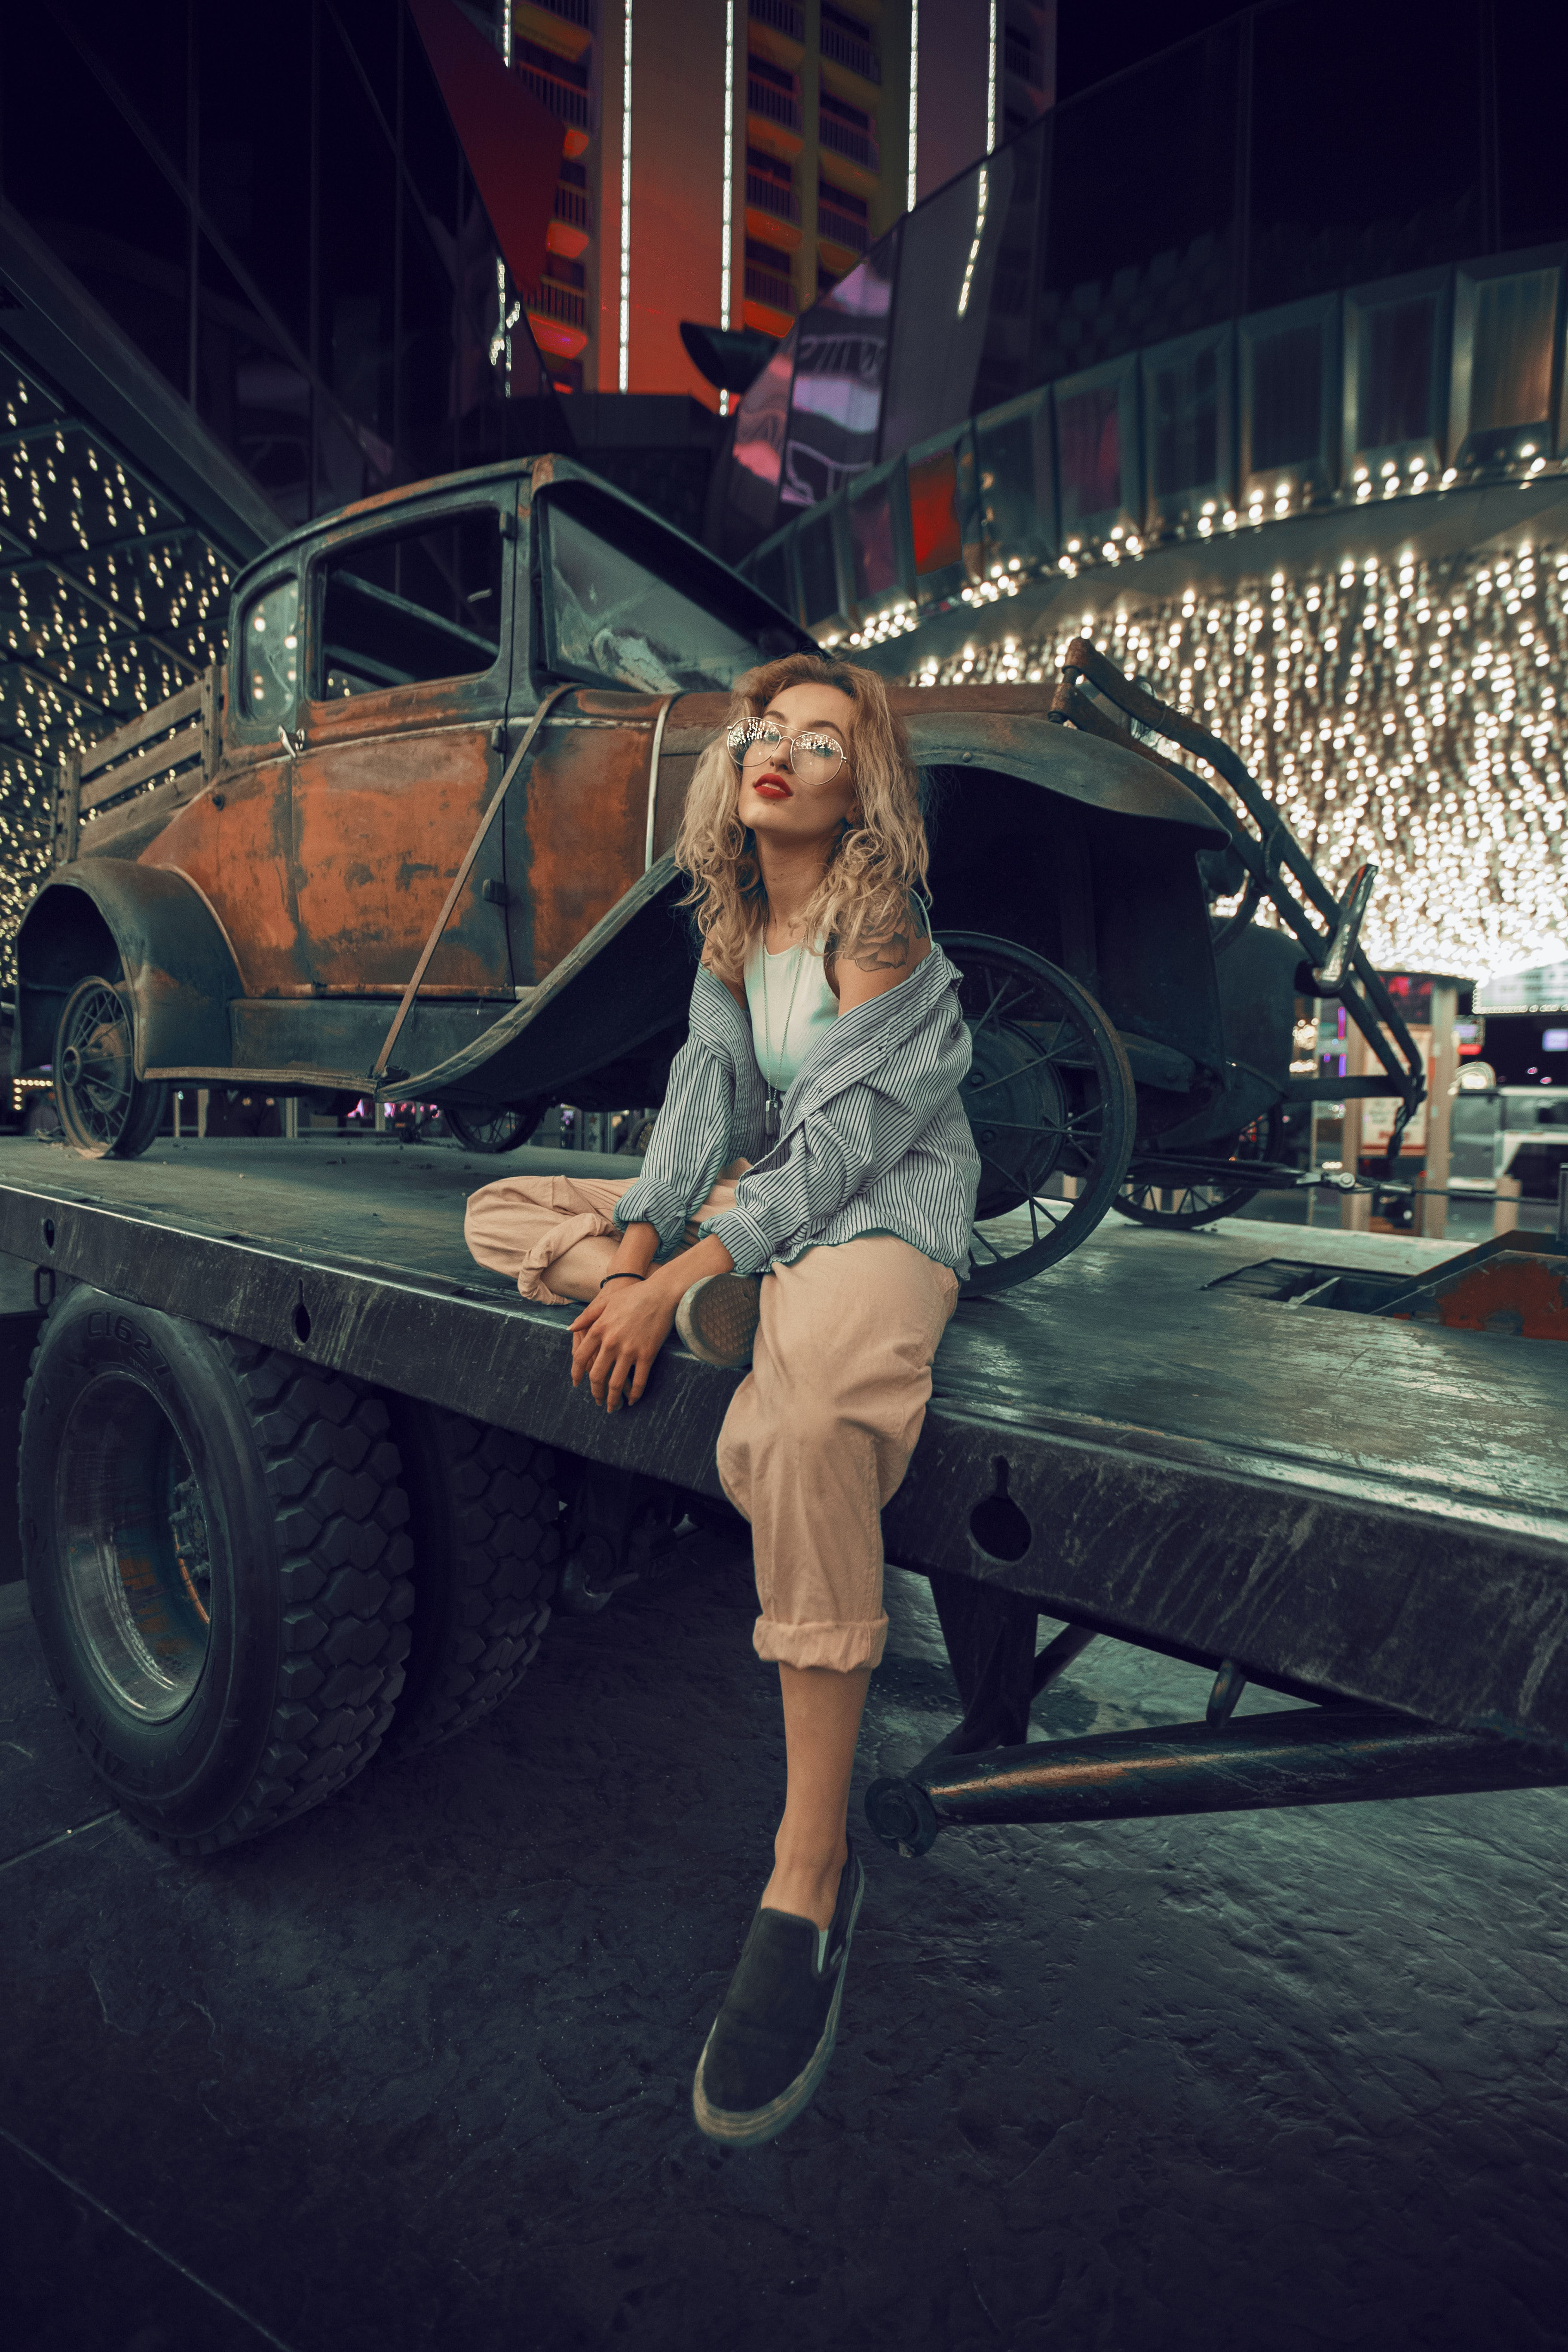 woman sitting on utility trailer during night